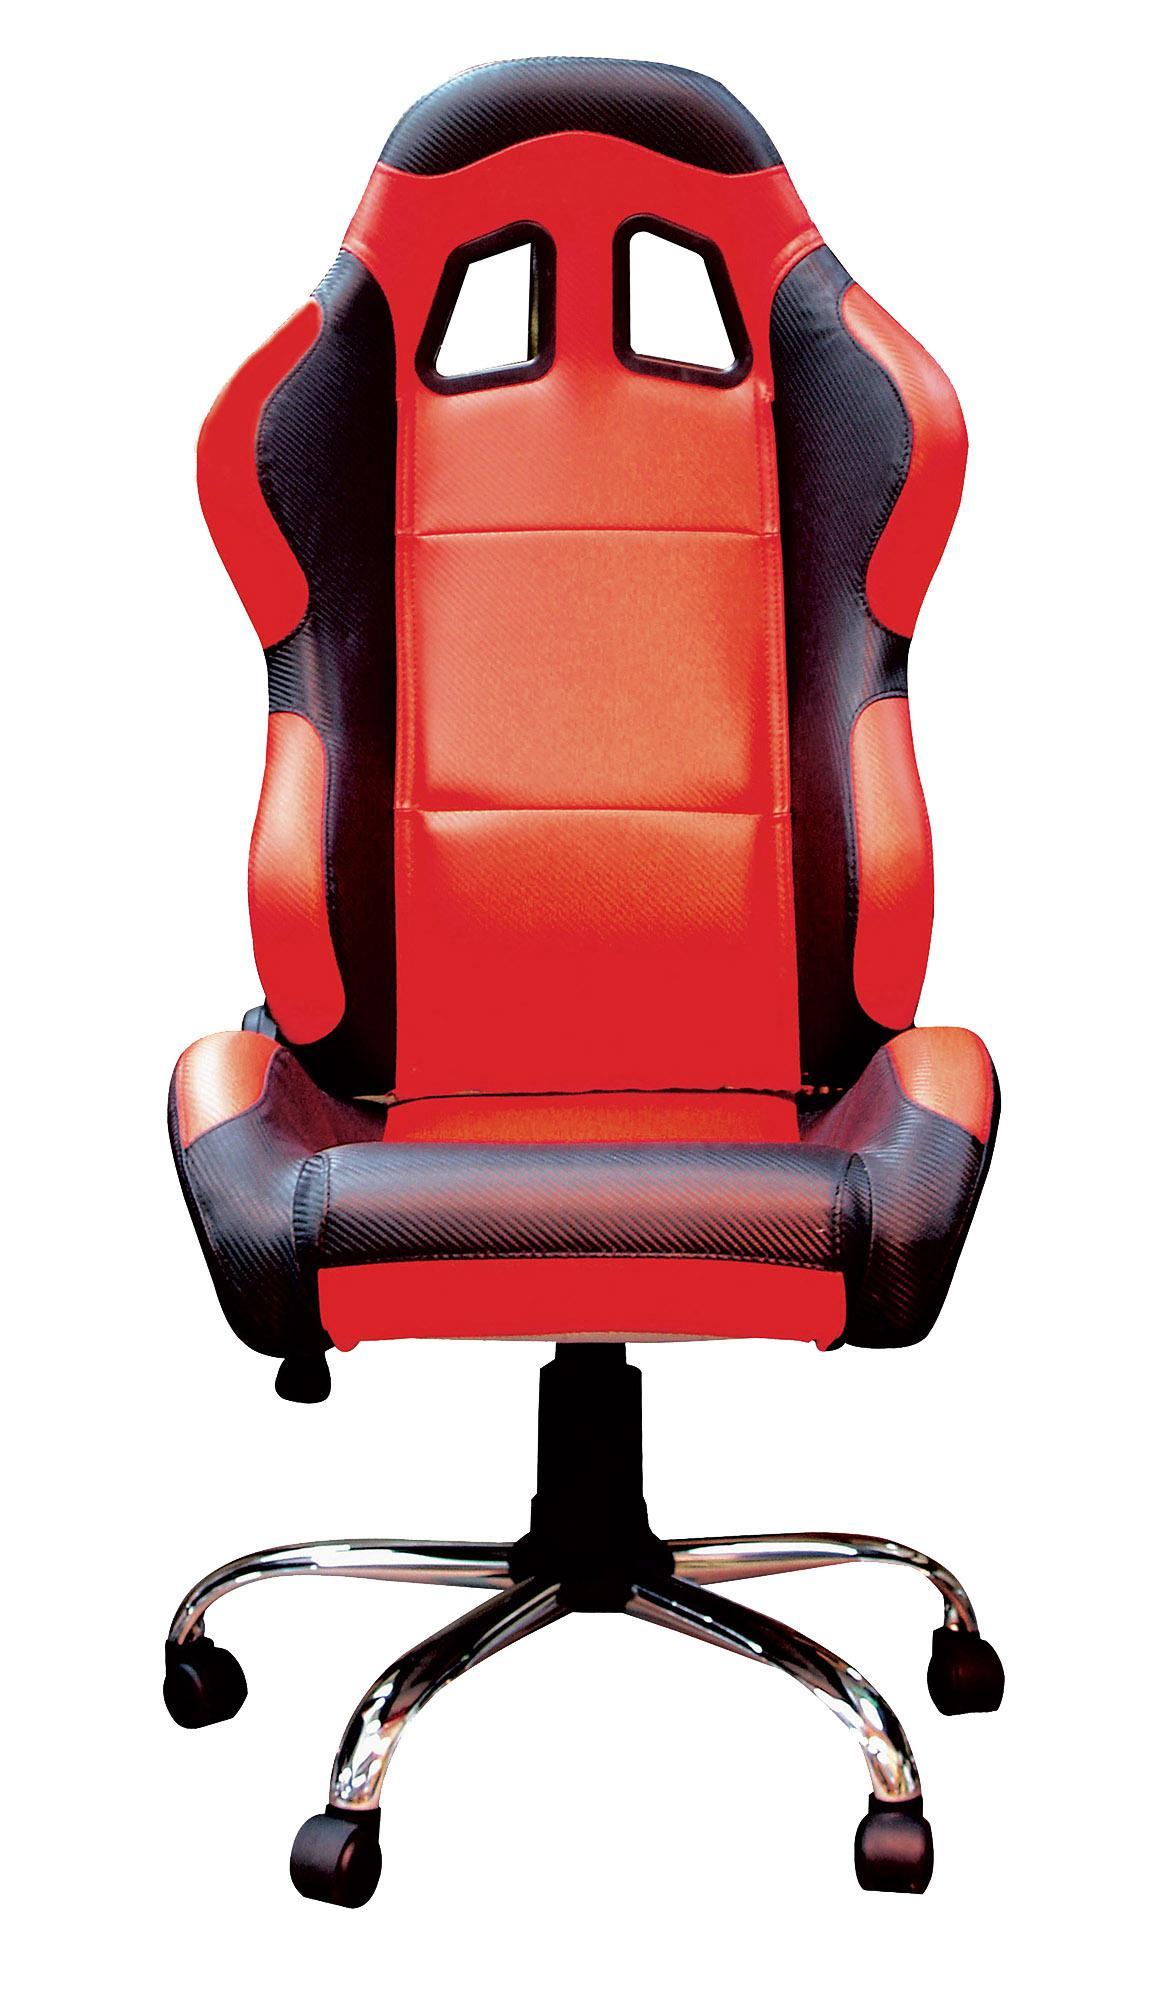 RIDER PADDOCK TEAM CHAIR - RED/NO LOGO WITH BLACK TRIM